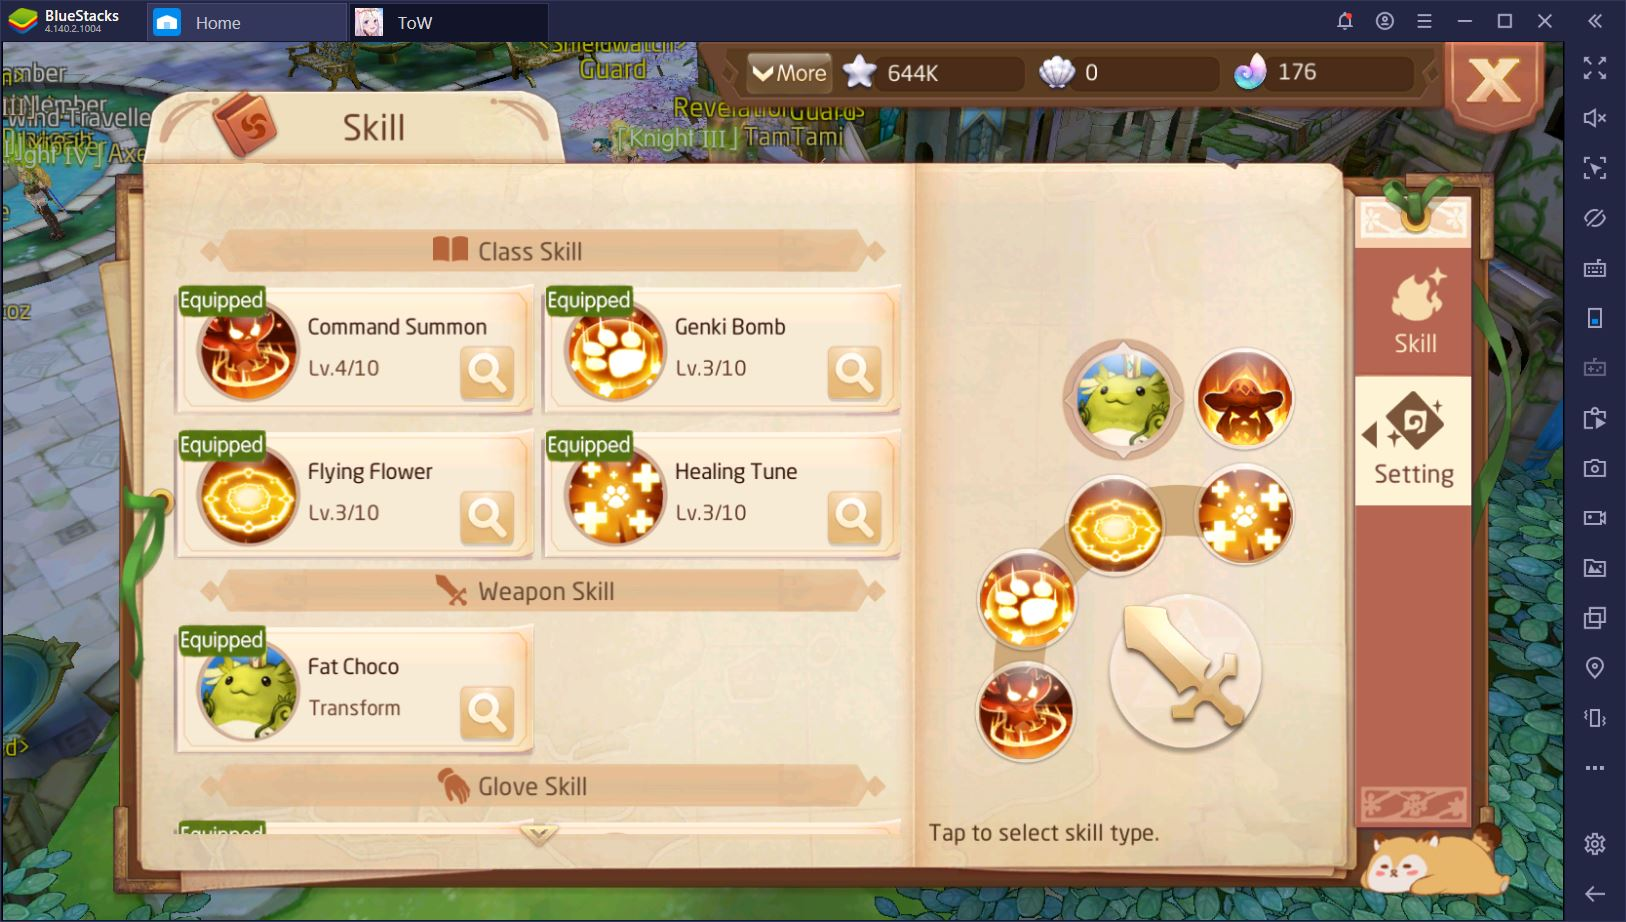 Tales of Wind on PC: How Does It Stack Up Against Other MMORPGs?